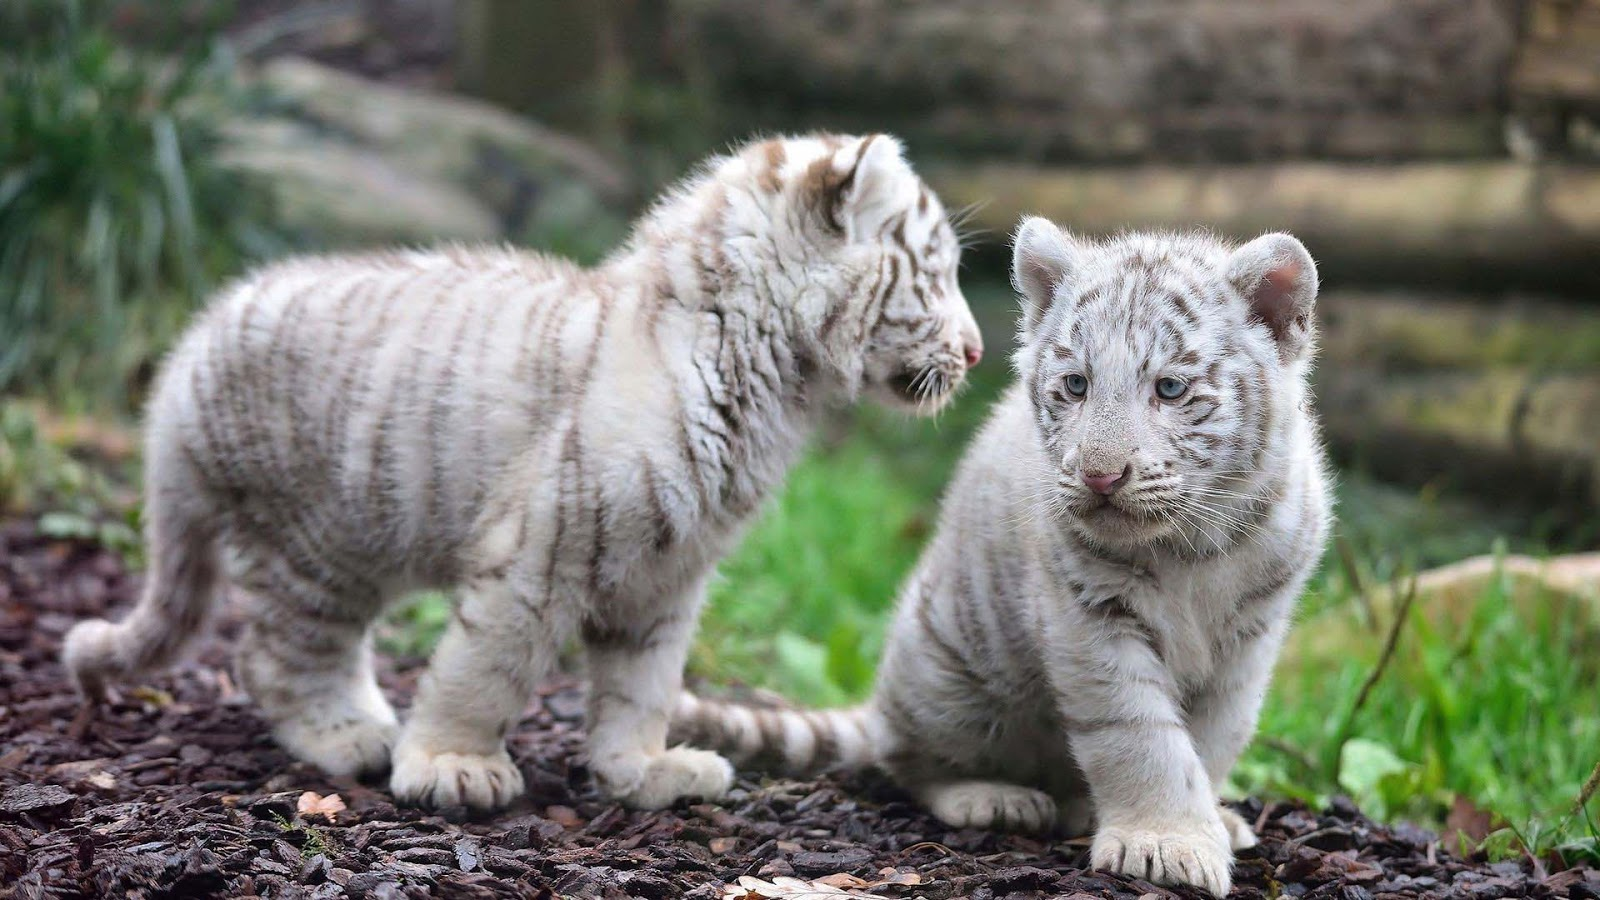 White Tiger Background Wallpapers WIN10 THEMES 1600x900